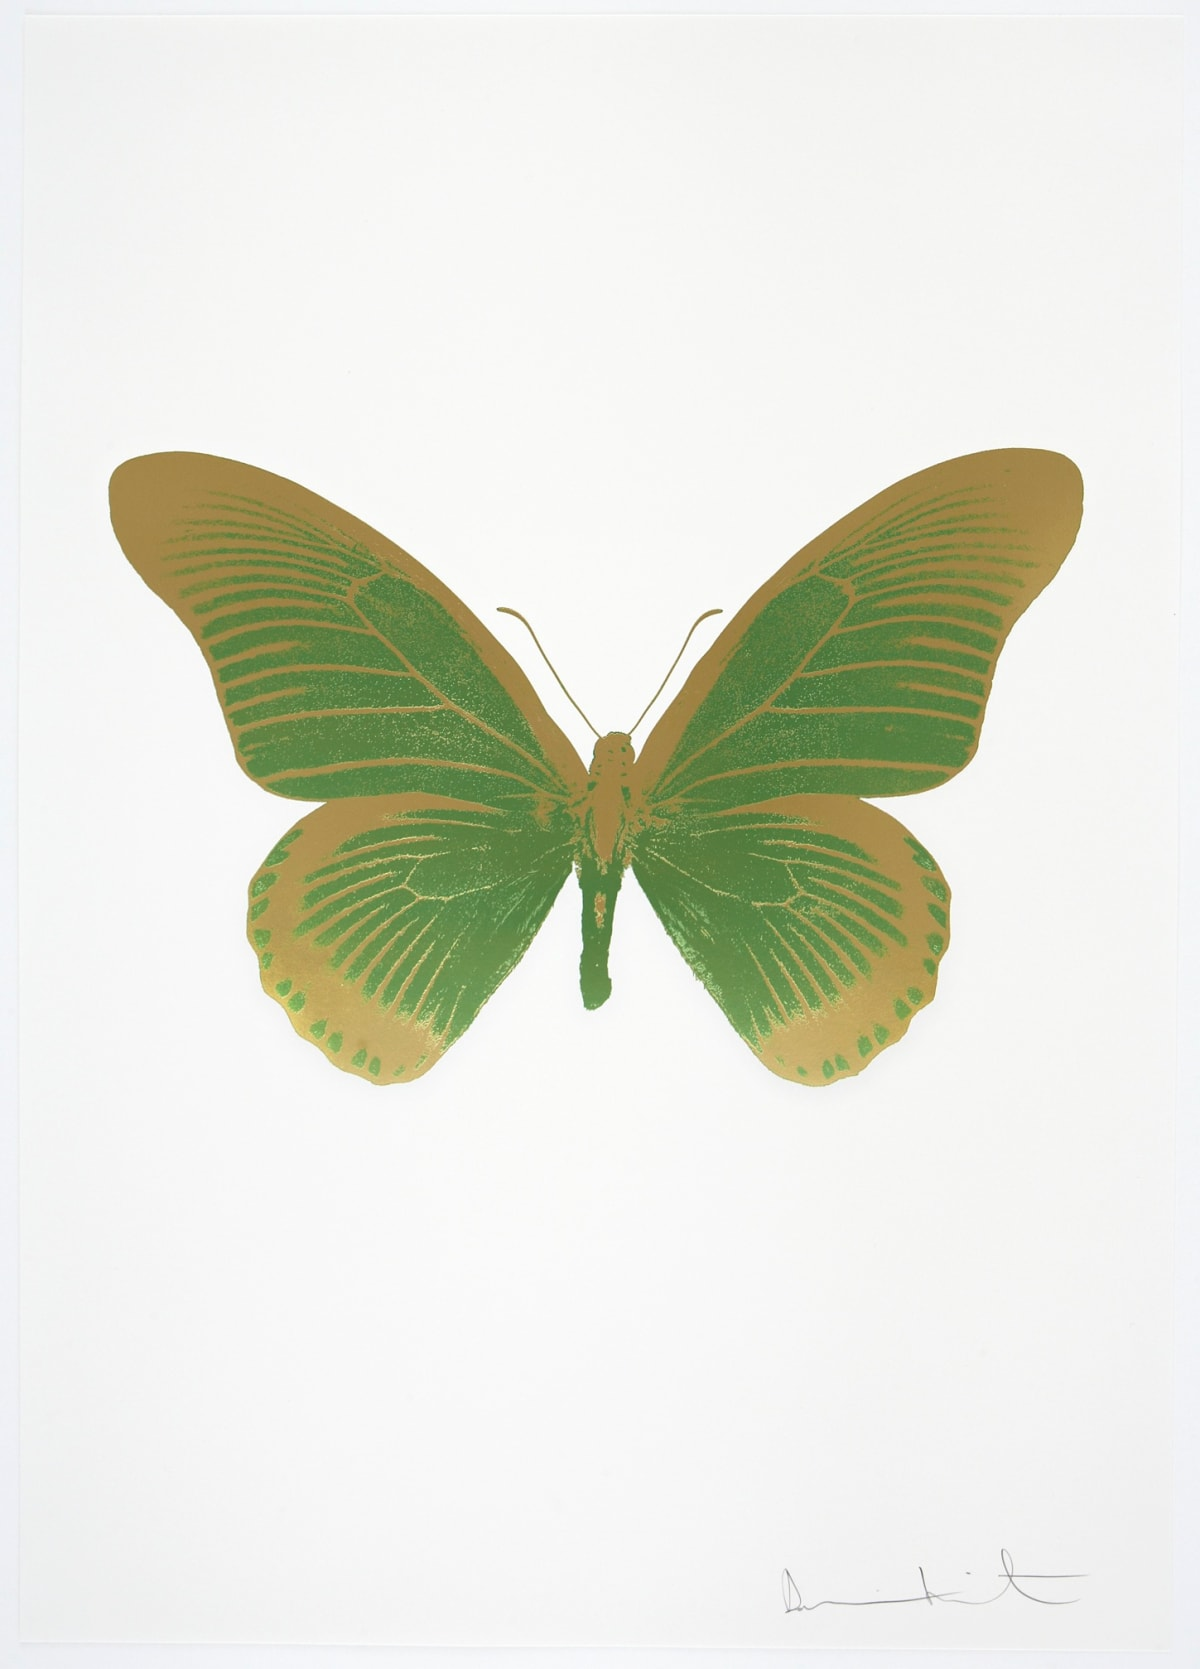 Damien Hirst The Souls IV - Leaf Green/Sunset Gold, 2010 2 colour foil block on 300gsm Arches 88 archival paper. Signed and numbered. Published by Paul Stolper and Other Criteria 72 x 51cm OC8003 / 1418-26 Edition of 15